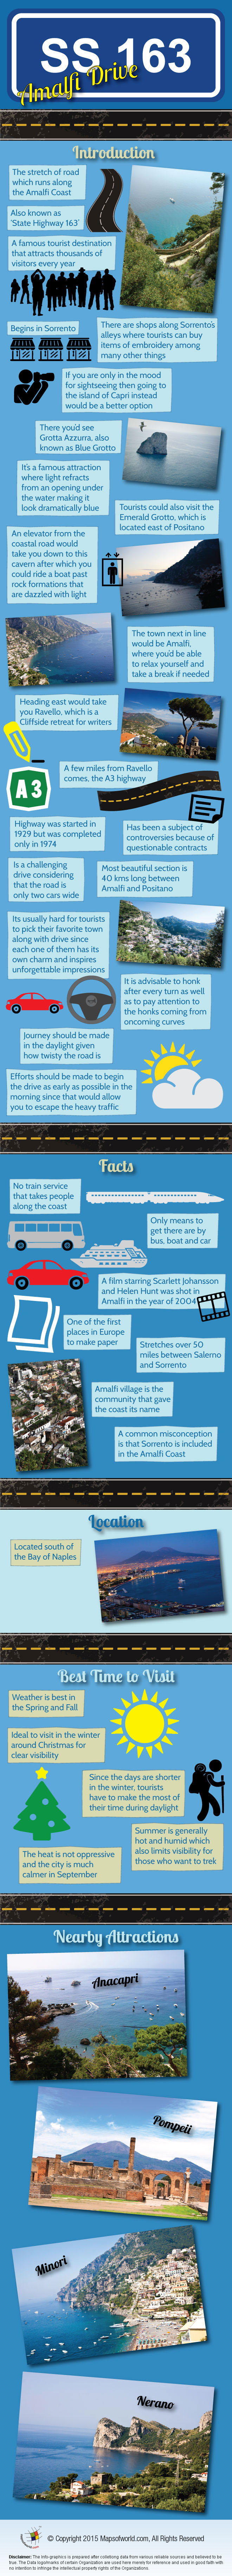 Amalfi Drive Travel Infographic